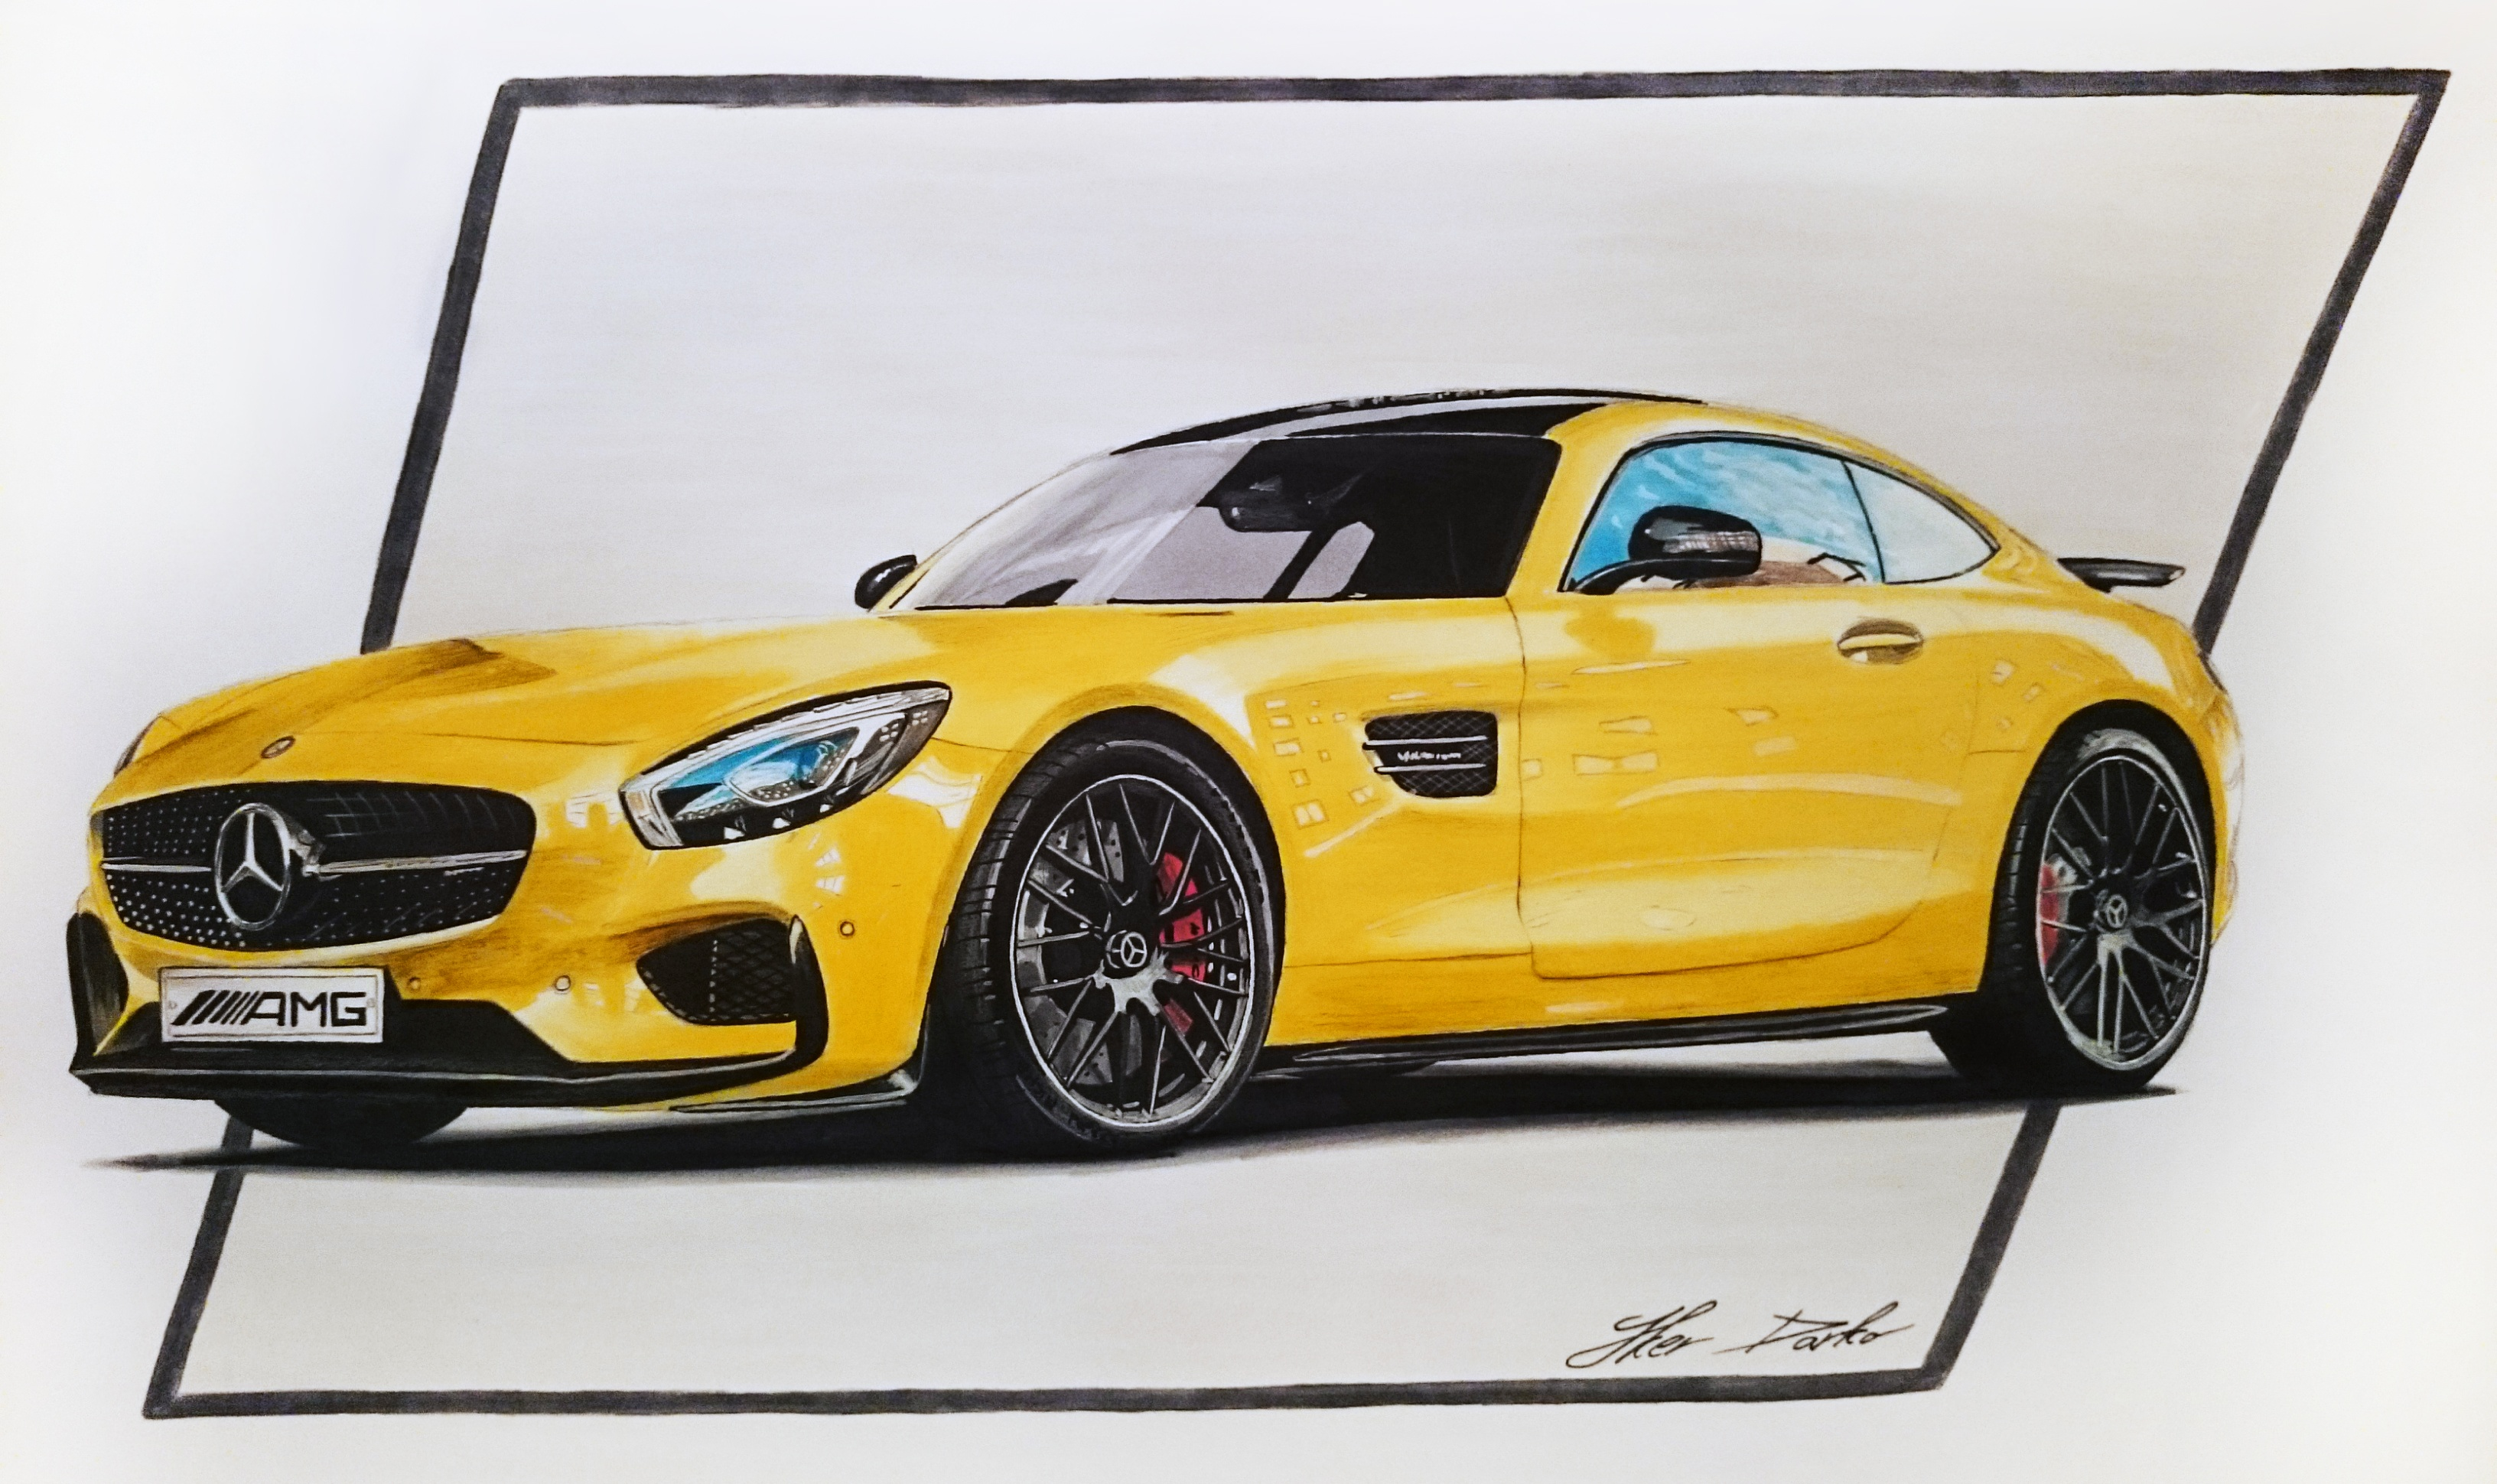 3264x1940 Mercedes Amg Gt S, 50x35cm, 7 Hours Of Work, Fb Pagecar Drawings